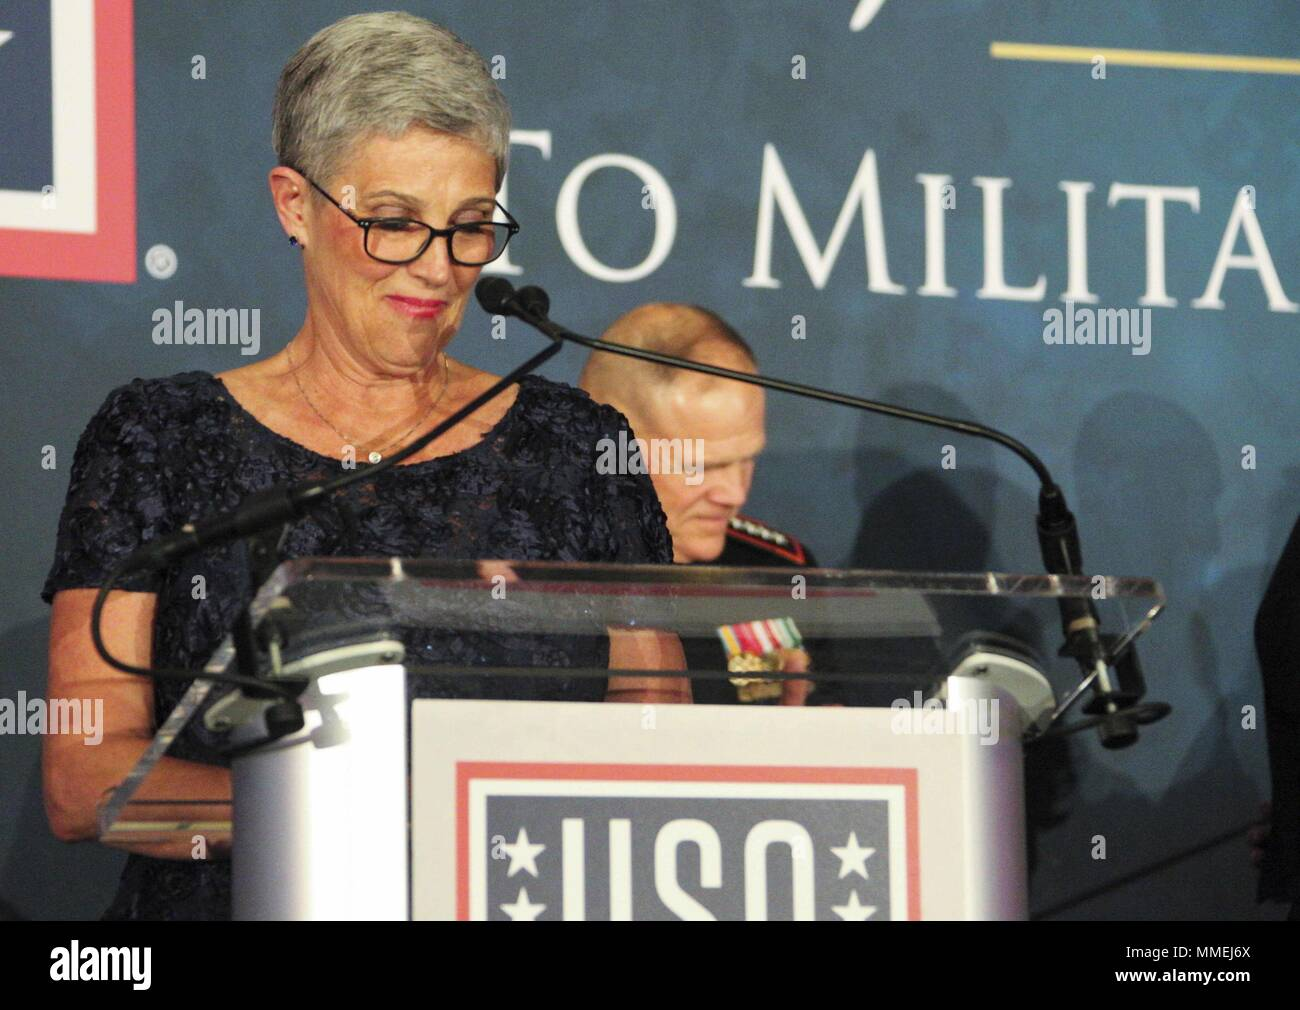 D'Arcy Neller, wife of Commandant of the Marine Corps Gen. Robert B. Neller, speaks to military members and guests during the 36th Annual USO Military Spouse Program Awards Dinner in Washington, D.C. May 10, 2018, May 10, 2018. The annual awards dinner honors military spouses. (U.S. Marine Corps photo by Sgt. Olivia G. Ortiz). () Stock Photo